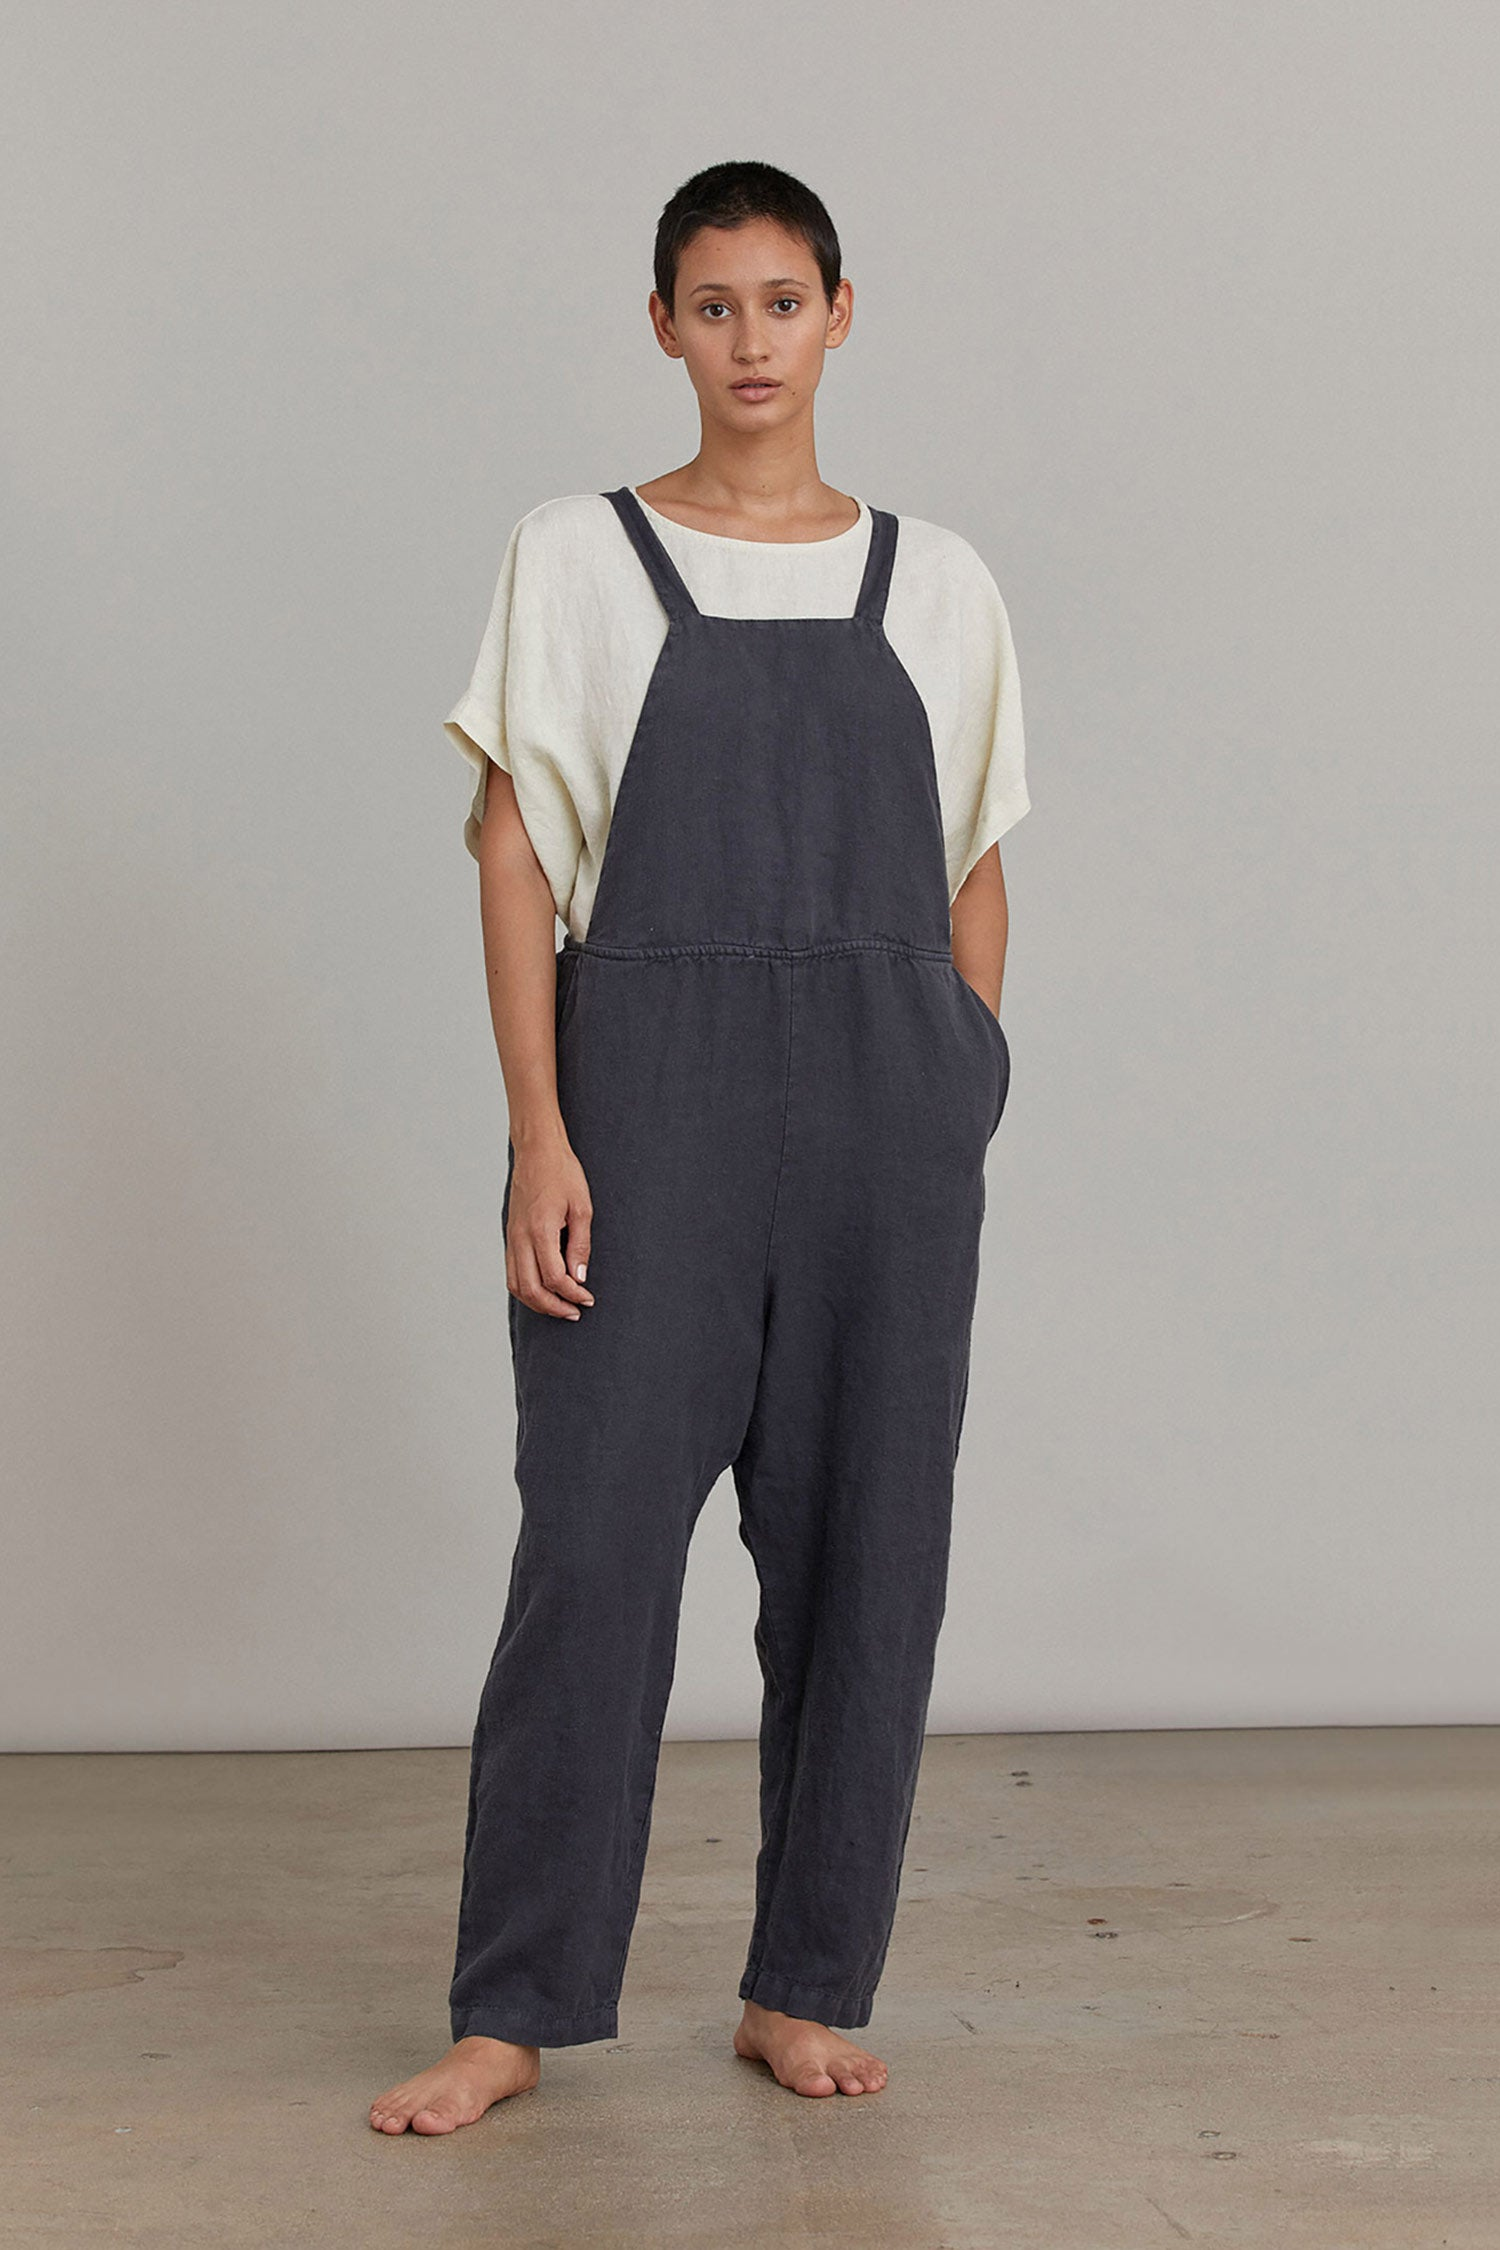 SACK OVERALL / L-SO17 / FADED BLACK